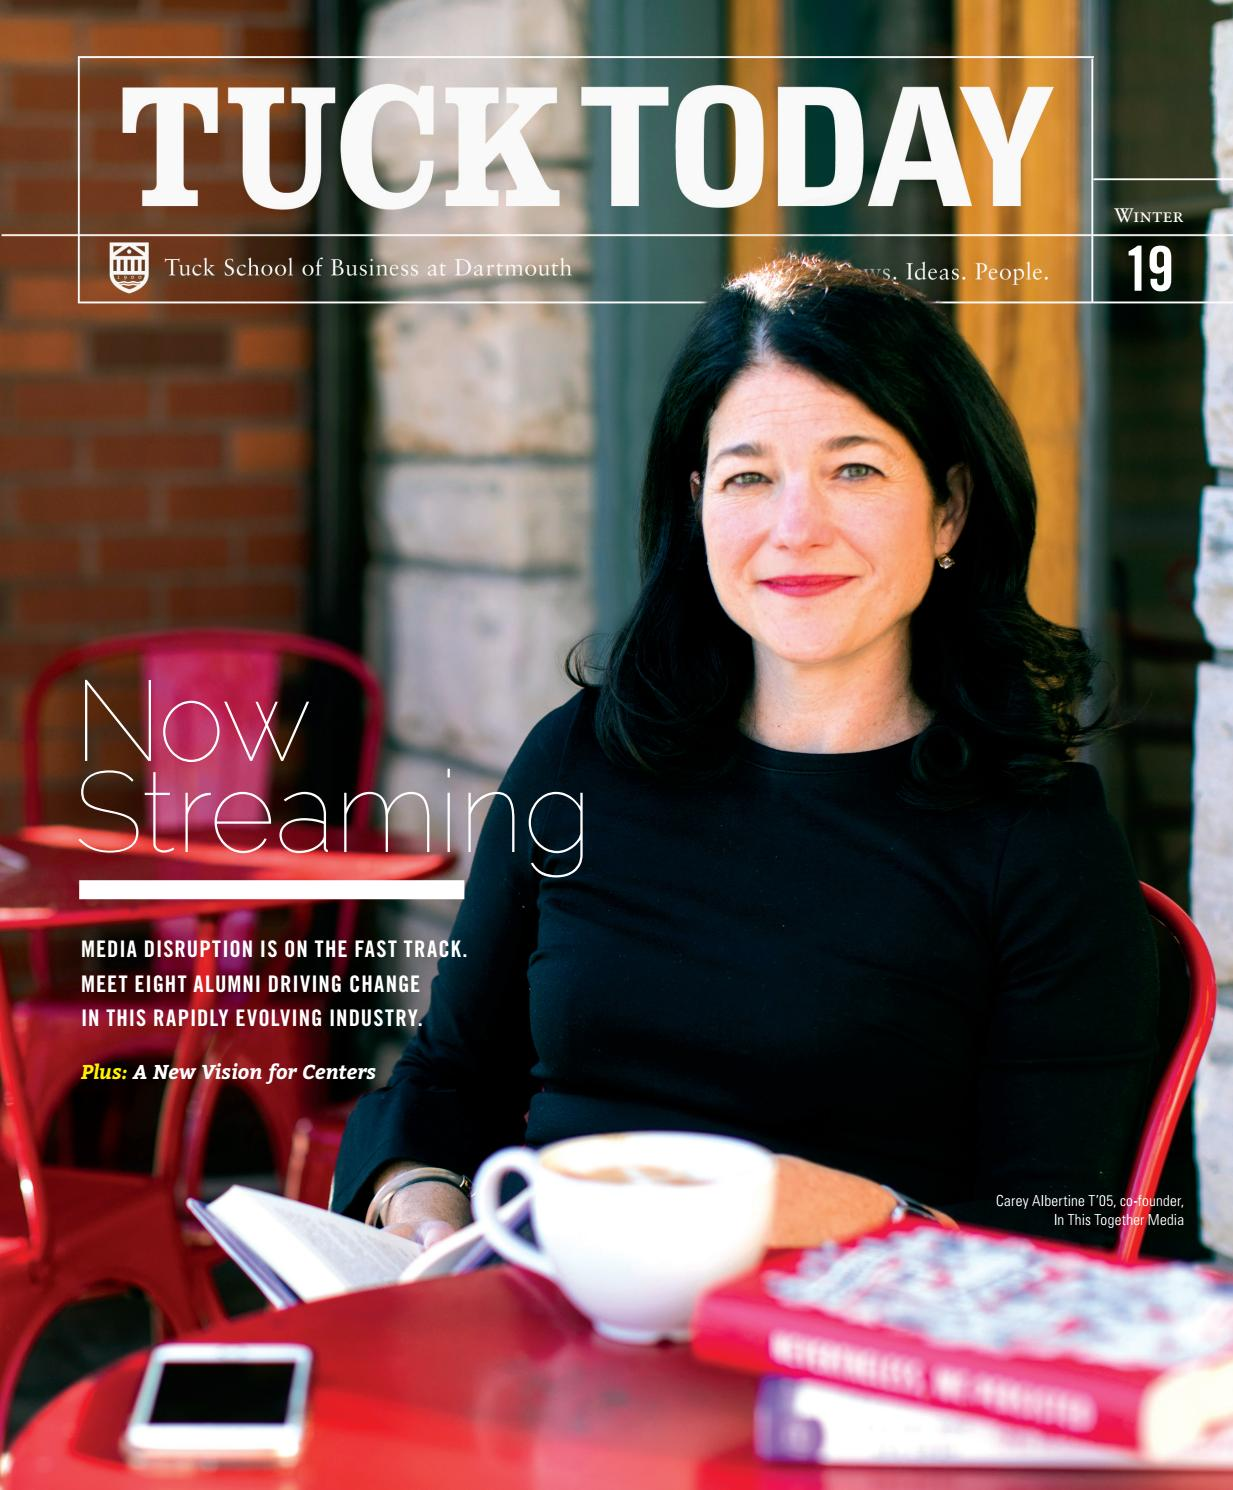 Tuck Today Alumni Magazine By Tuck School Of Business At Dartmouth